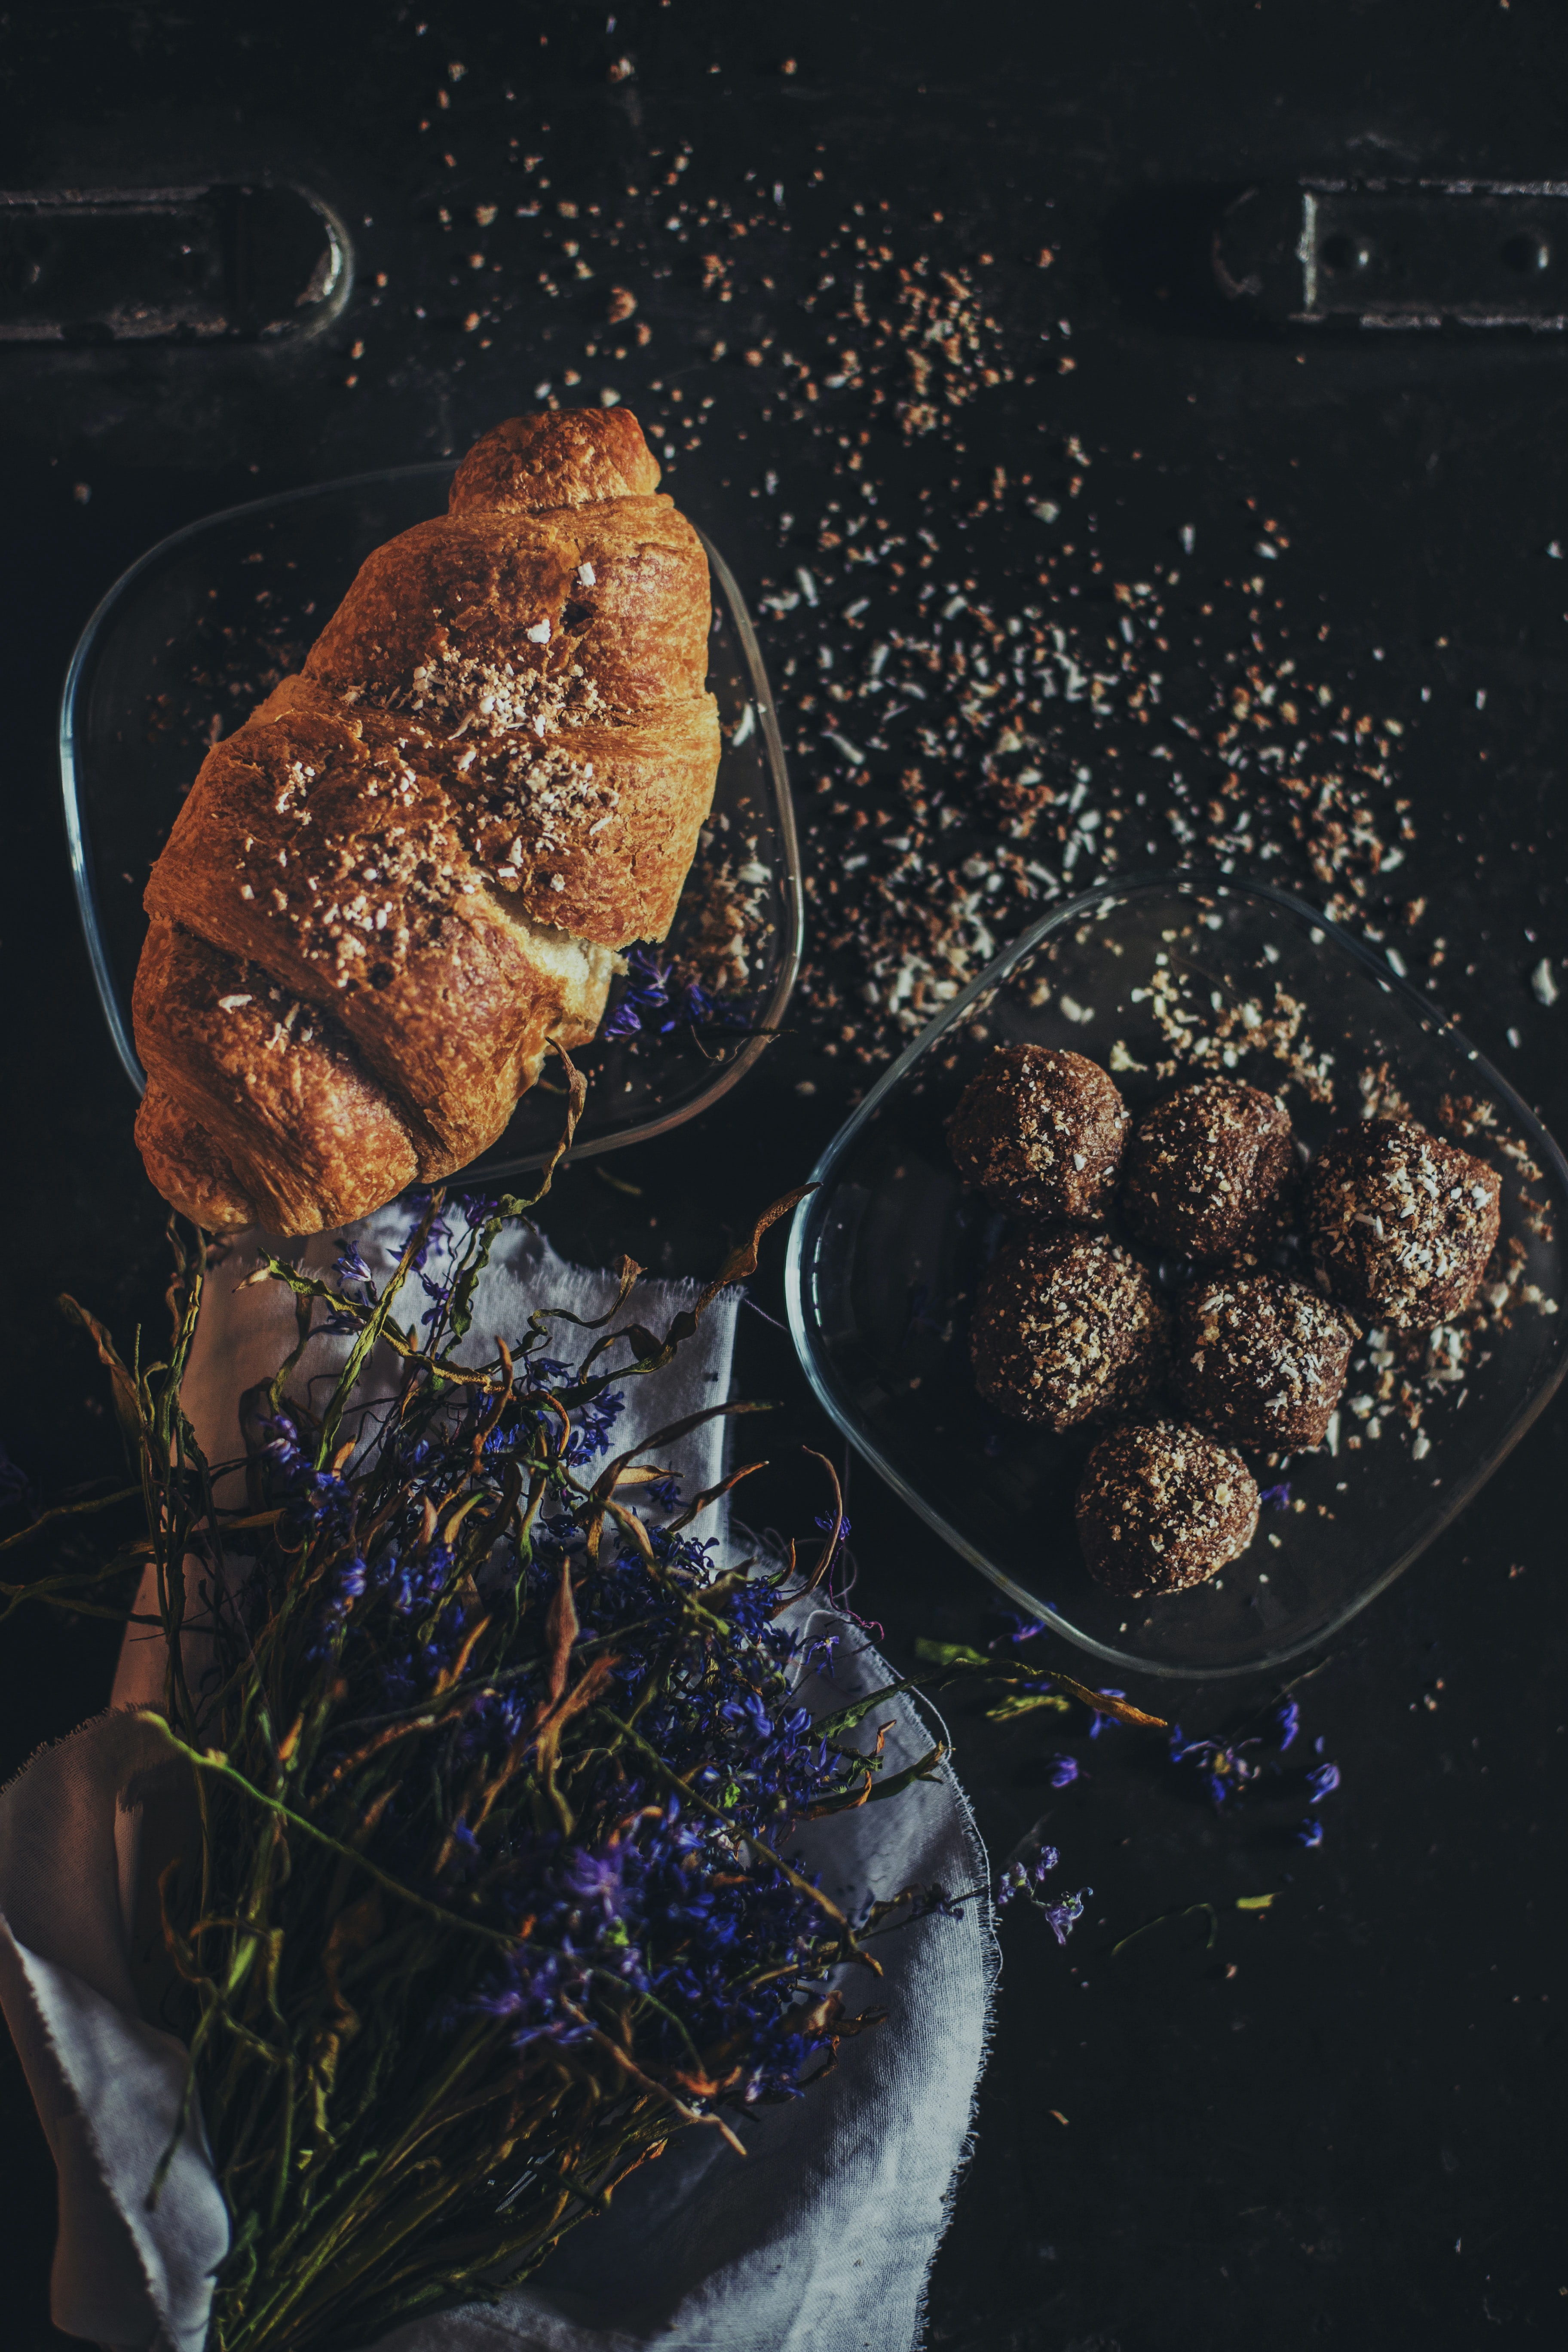 Rustic bakery tablescape with french croissant, chocolate truffles, and dried flowers